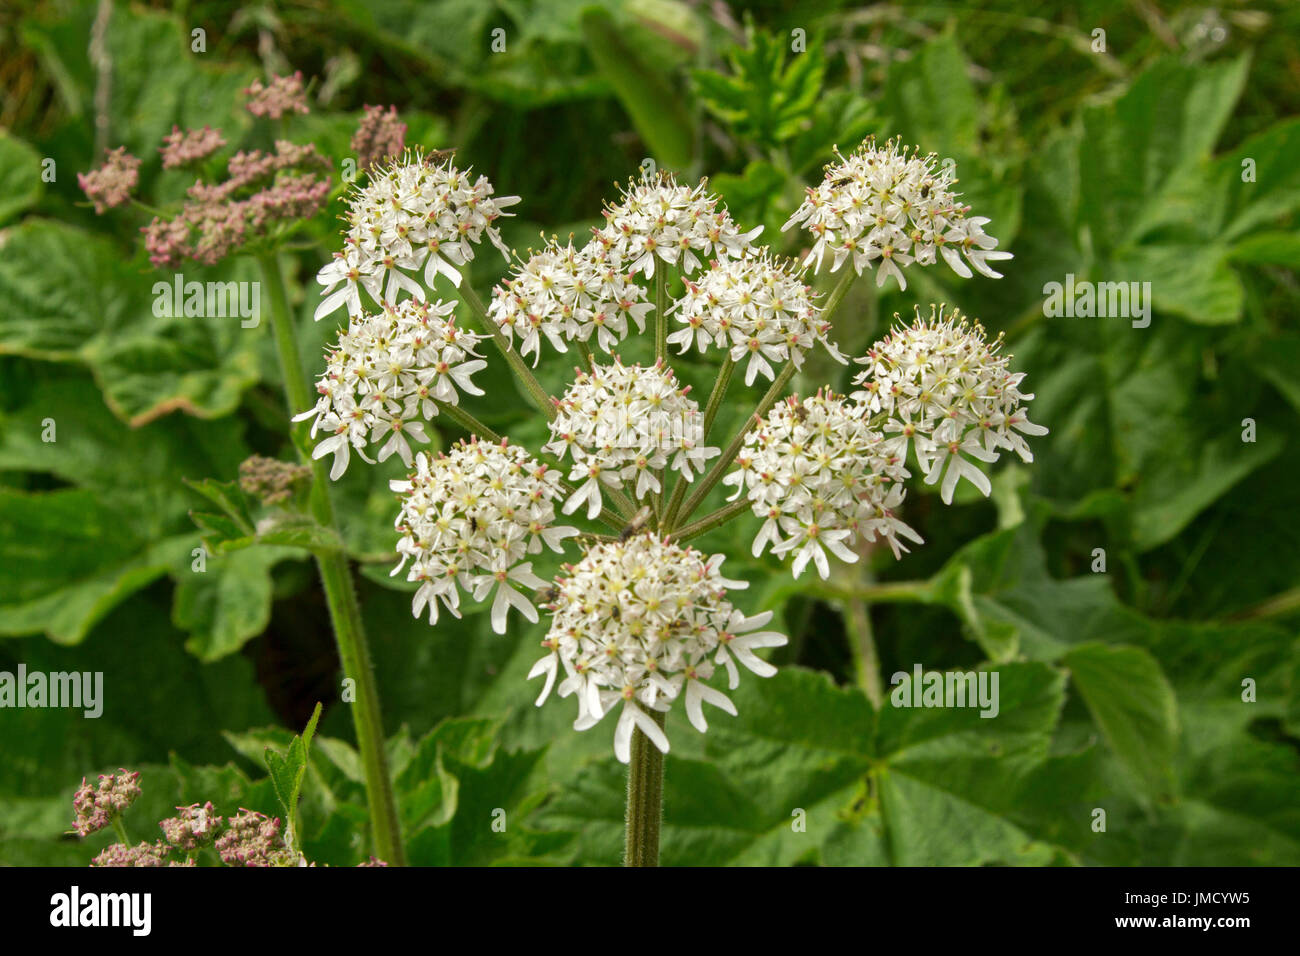 Common wild british flowers and weeds stock photos common wild panoramic view of cluster of creamy white flowers and emerald foliage of hogweed heracium sphondylium mightylinksfo